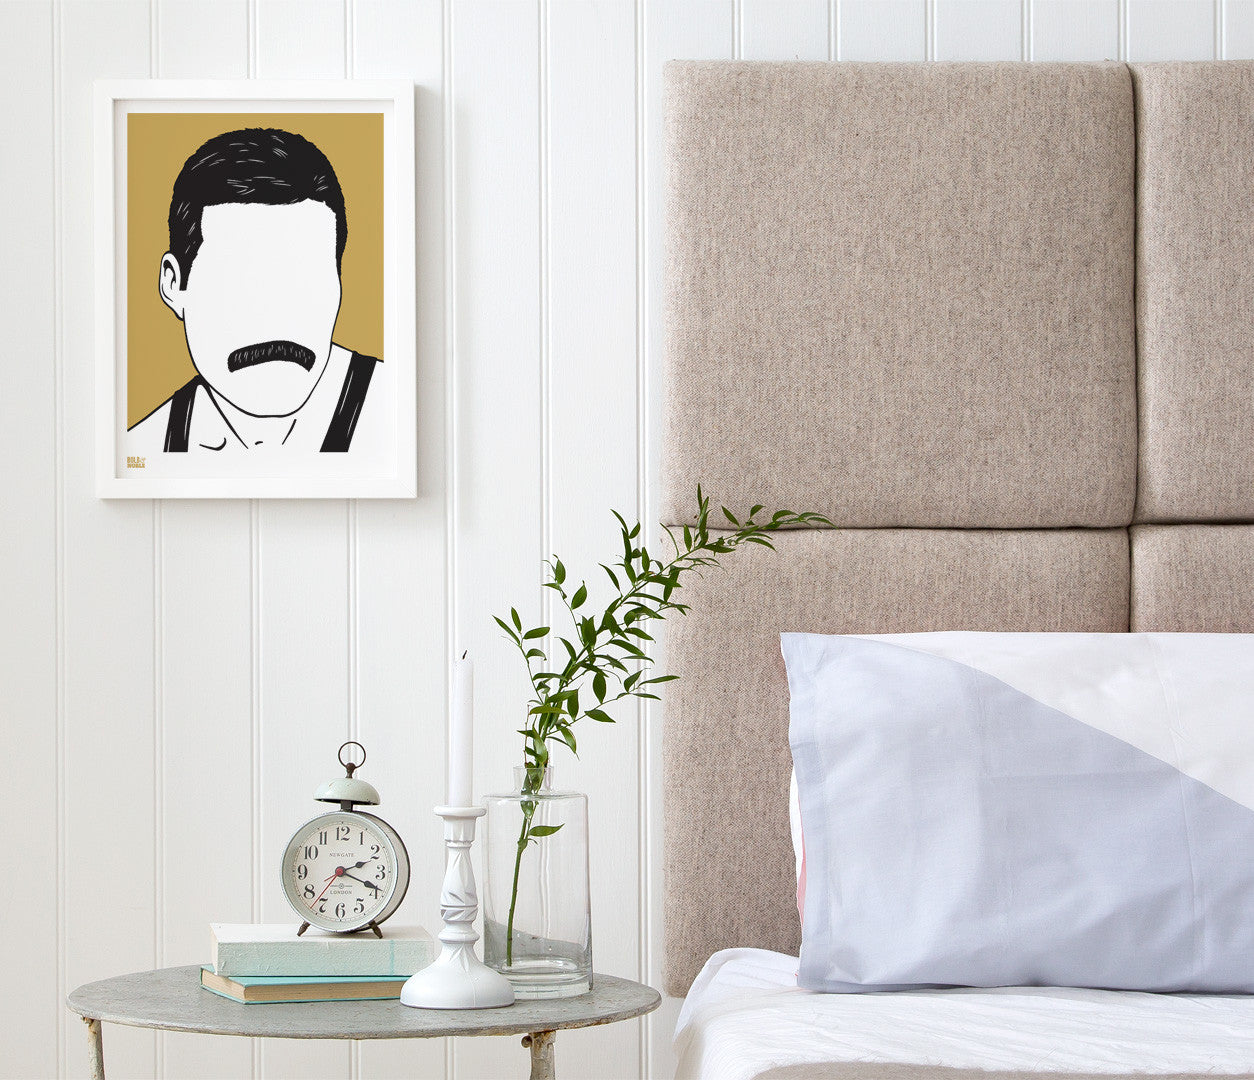 Wall Art ideas: Economical Screen Prints, Freddie Mercury print in bronze